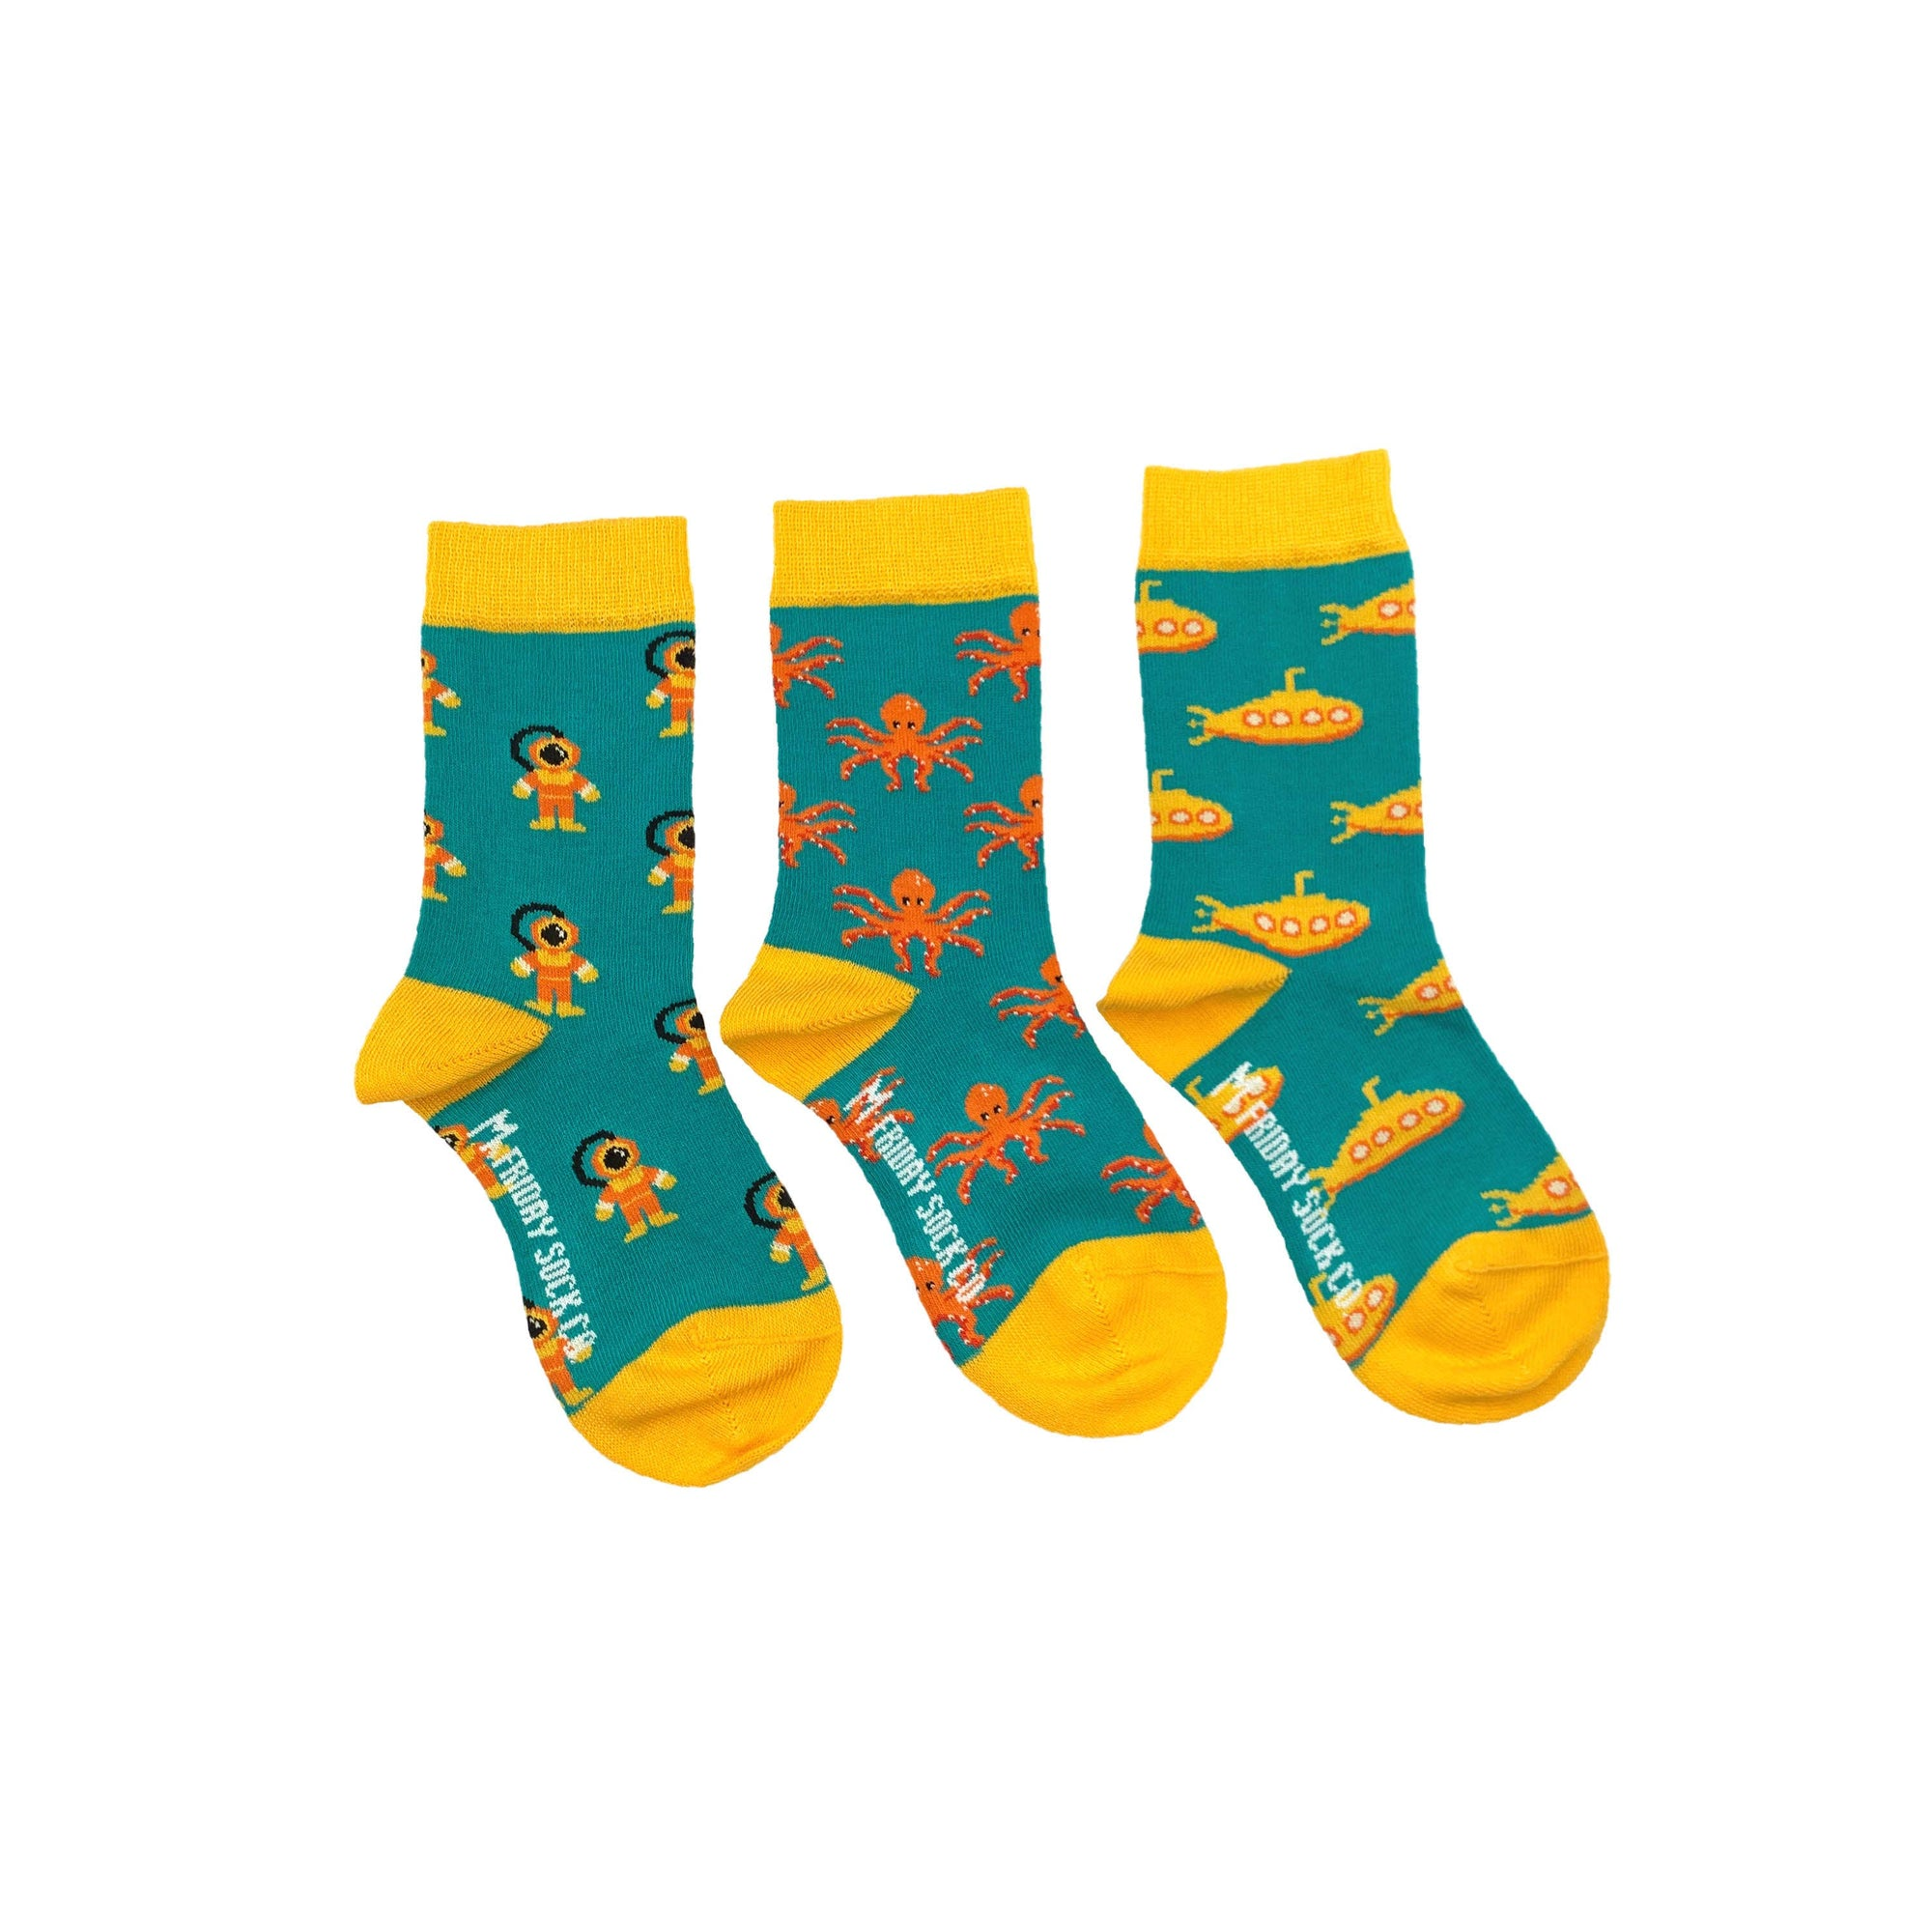 Friday Sock Co. Kid's Socks | Diver, Submarine, & Octopus | Mismatched